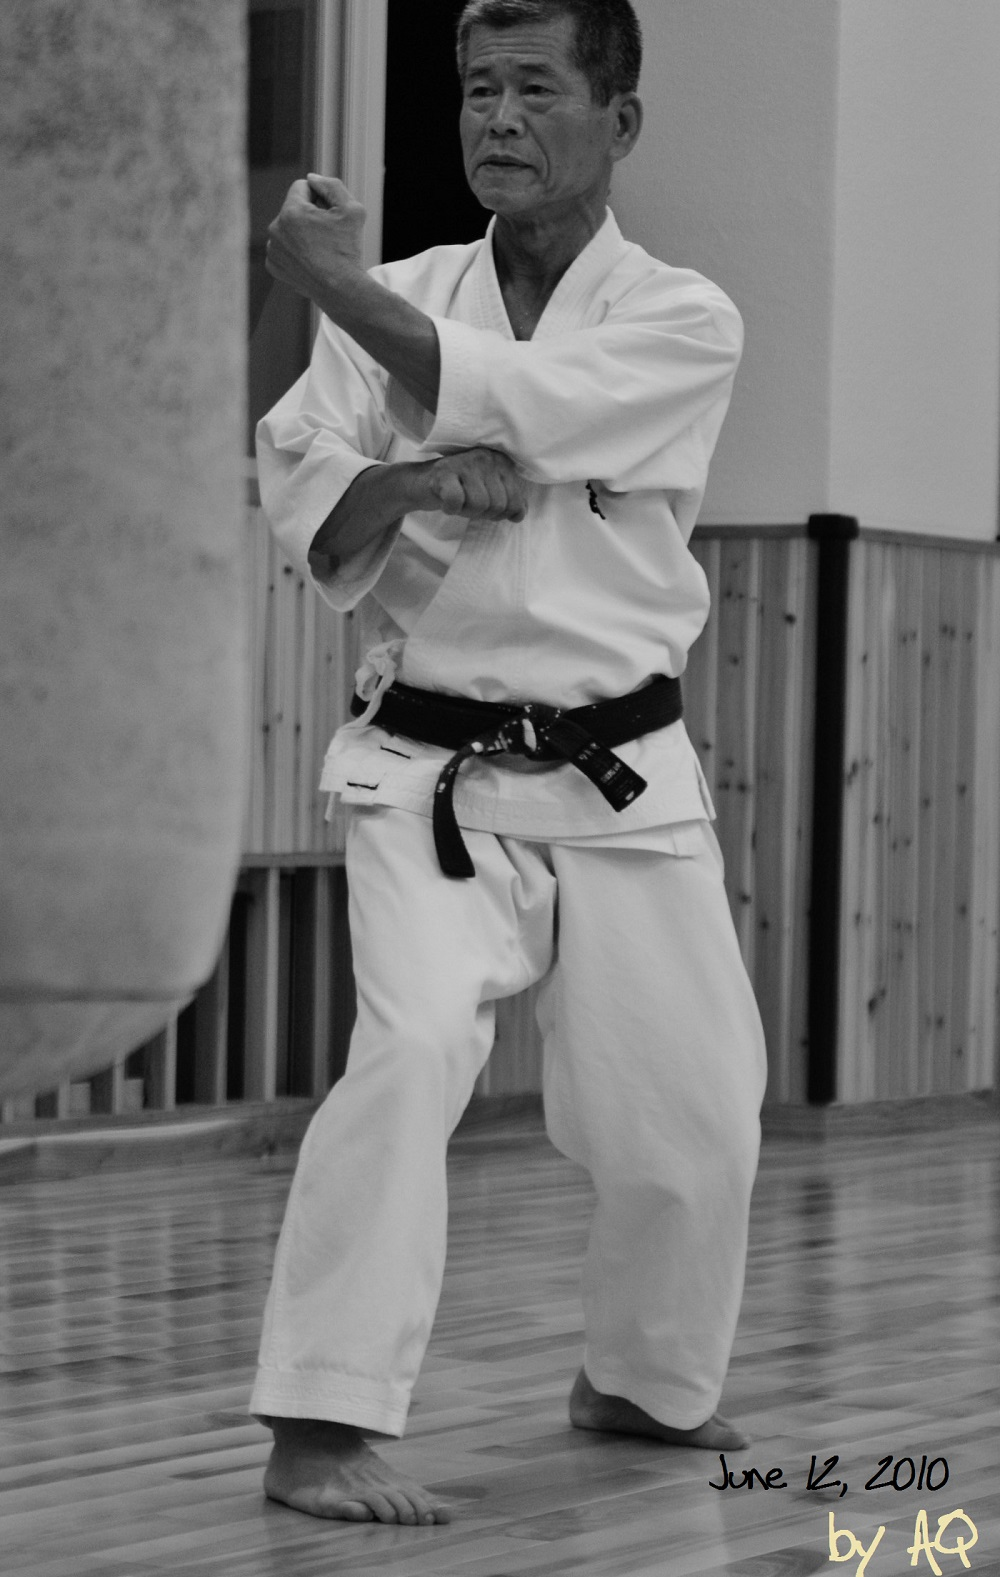 Photo of Miyahira Sensei, a carpenter certified to restore listed buildings like castle etc. performing Naihanchi, June 12, 2010, Shinbukan Dojo, Tomigusuku. Photo: A. Quast.